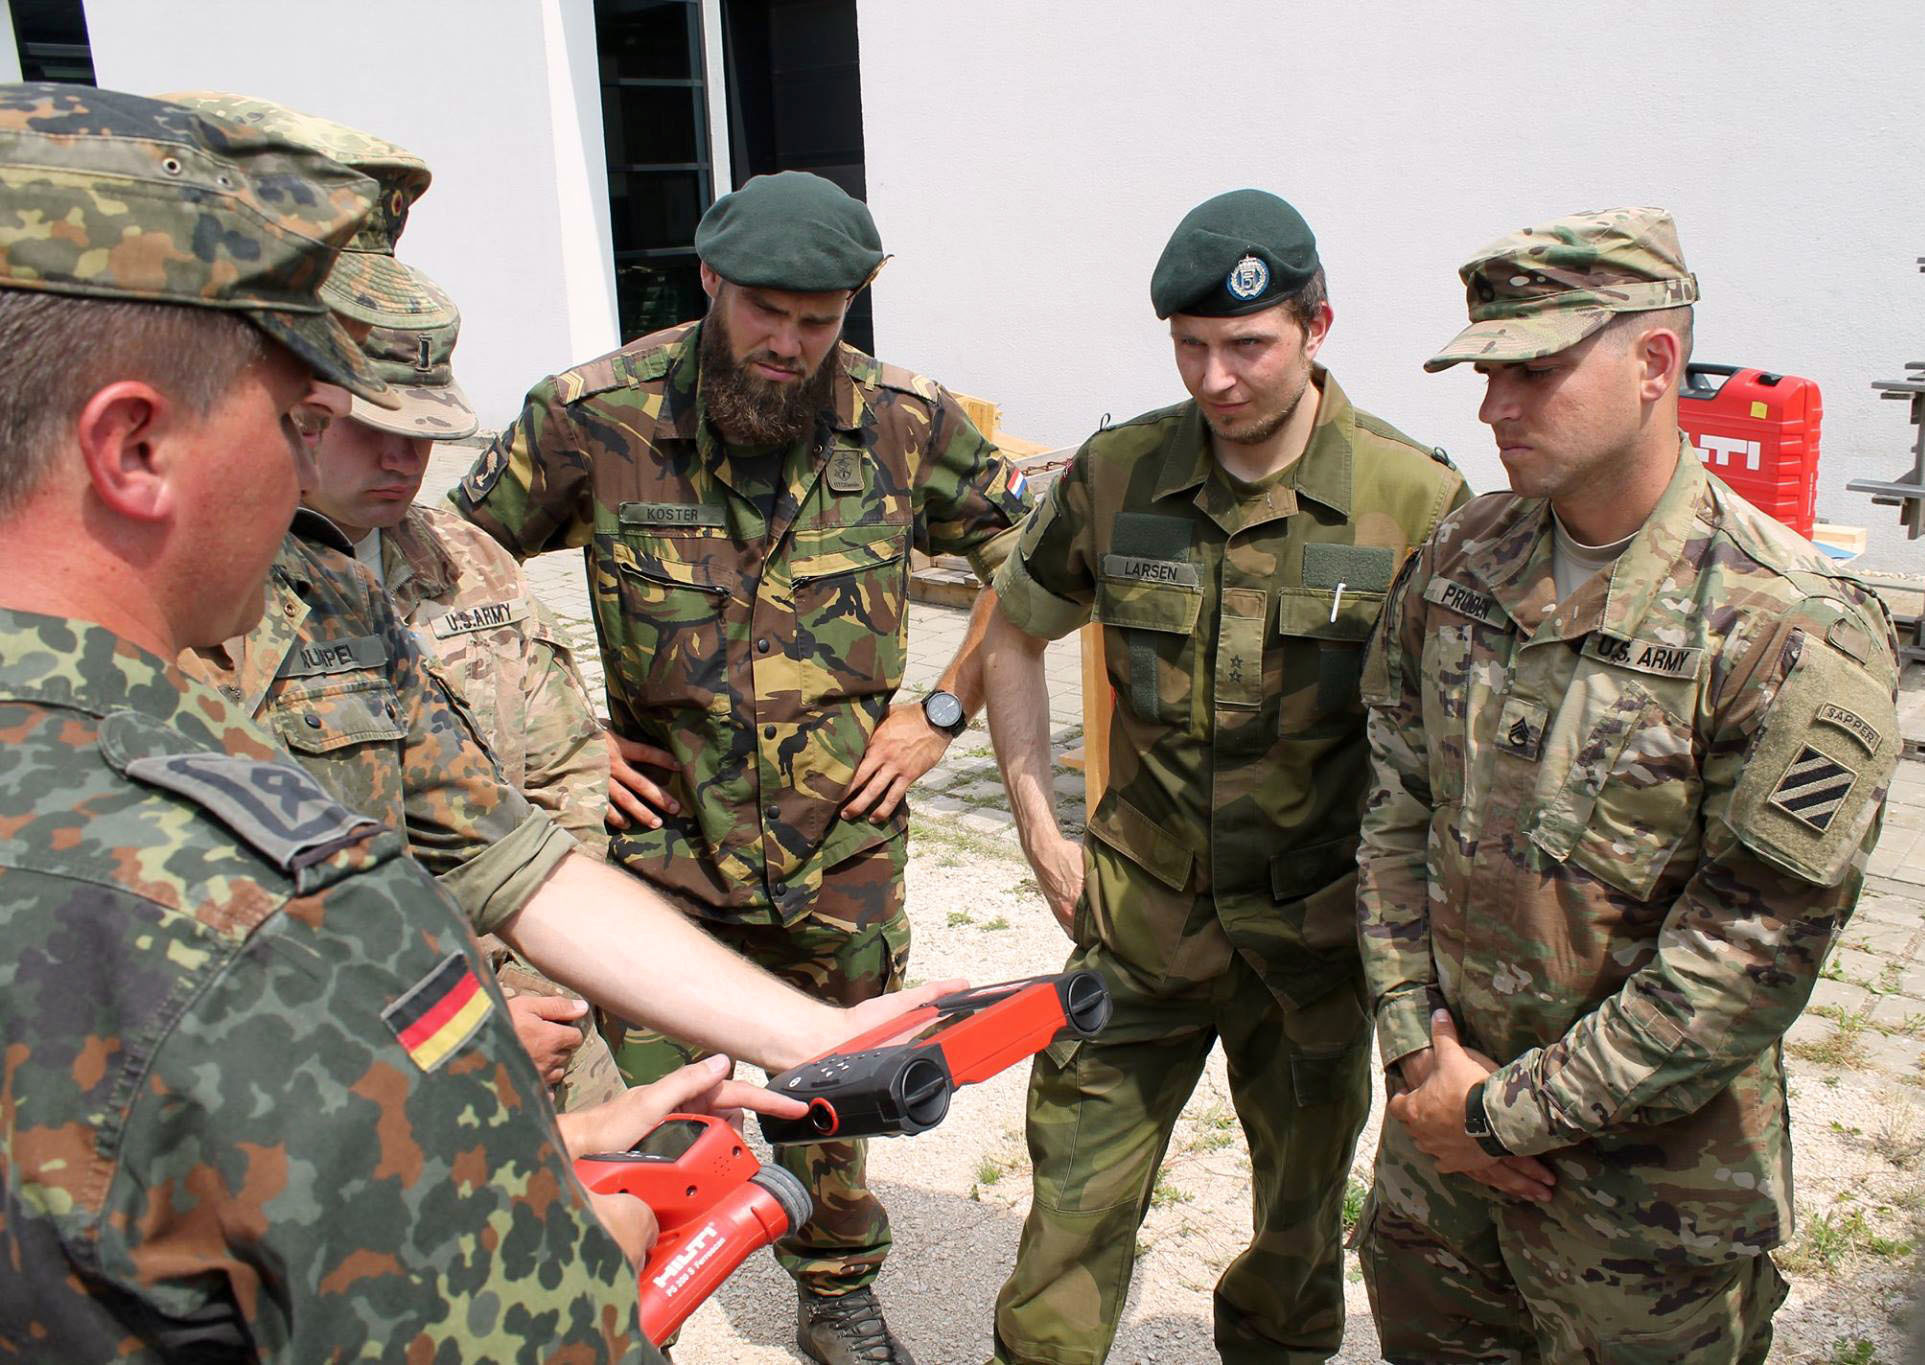 Staff Sgt. Craig Pruden, a combat engineer with 10th Engineer Battalion, 1st Armored Brigade Combat Team, 3rd Infantry Division, listens as German Soldiers talk about different equipment they use to assess bridges during a an International Bridge Assessment Course at Ingolstadt, Germany July 12. The course, a bilateral project from the Belgian and German engineer schools, supported by the Military Engineering Centre of Excellence, aims to inform Soldiers on the different existing bridge assessment methods.